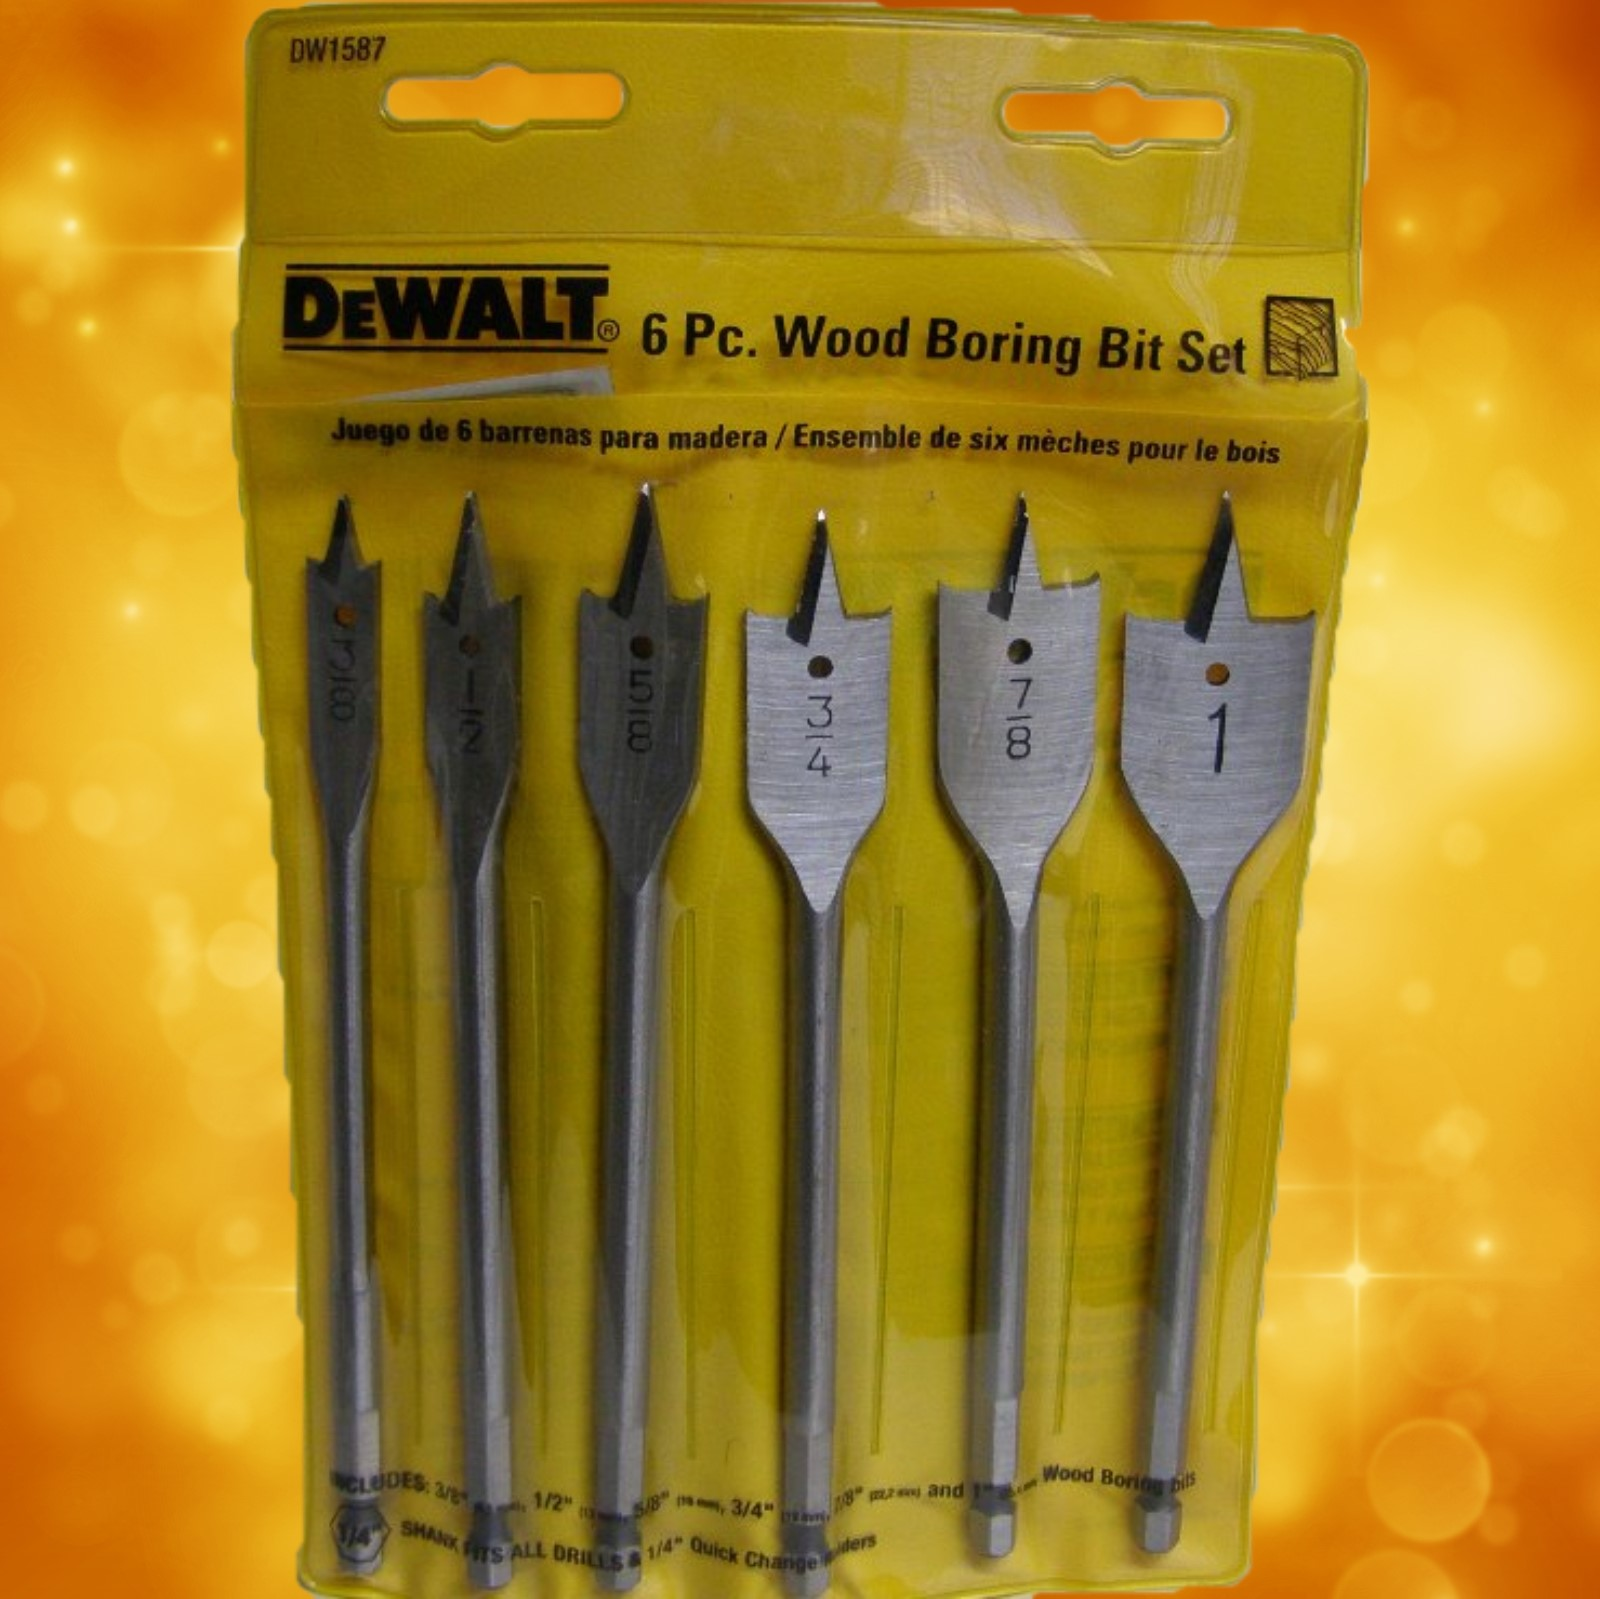 DeWalt 6 Pc. Wood Boring Bit Set DW1587